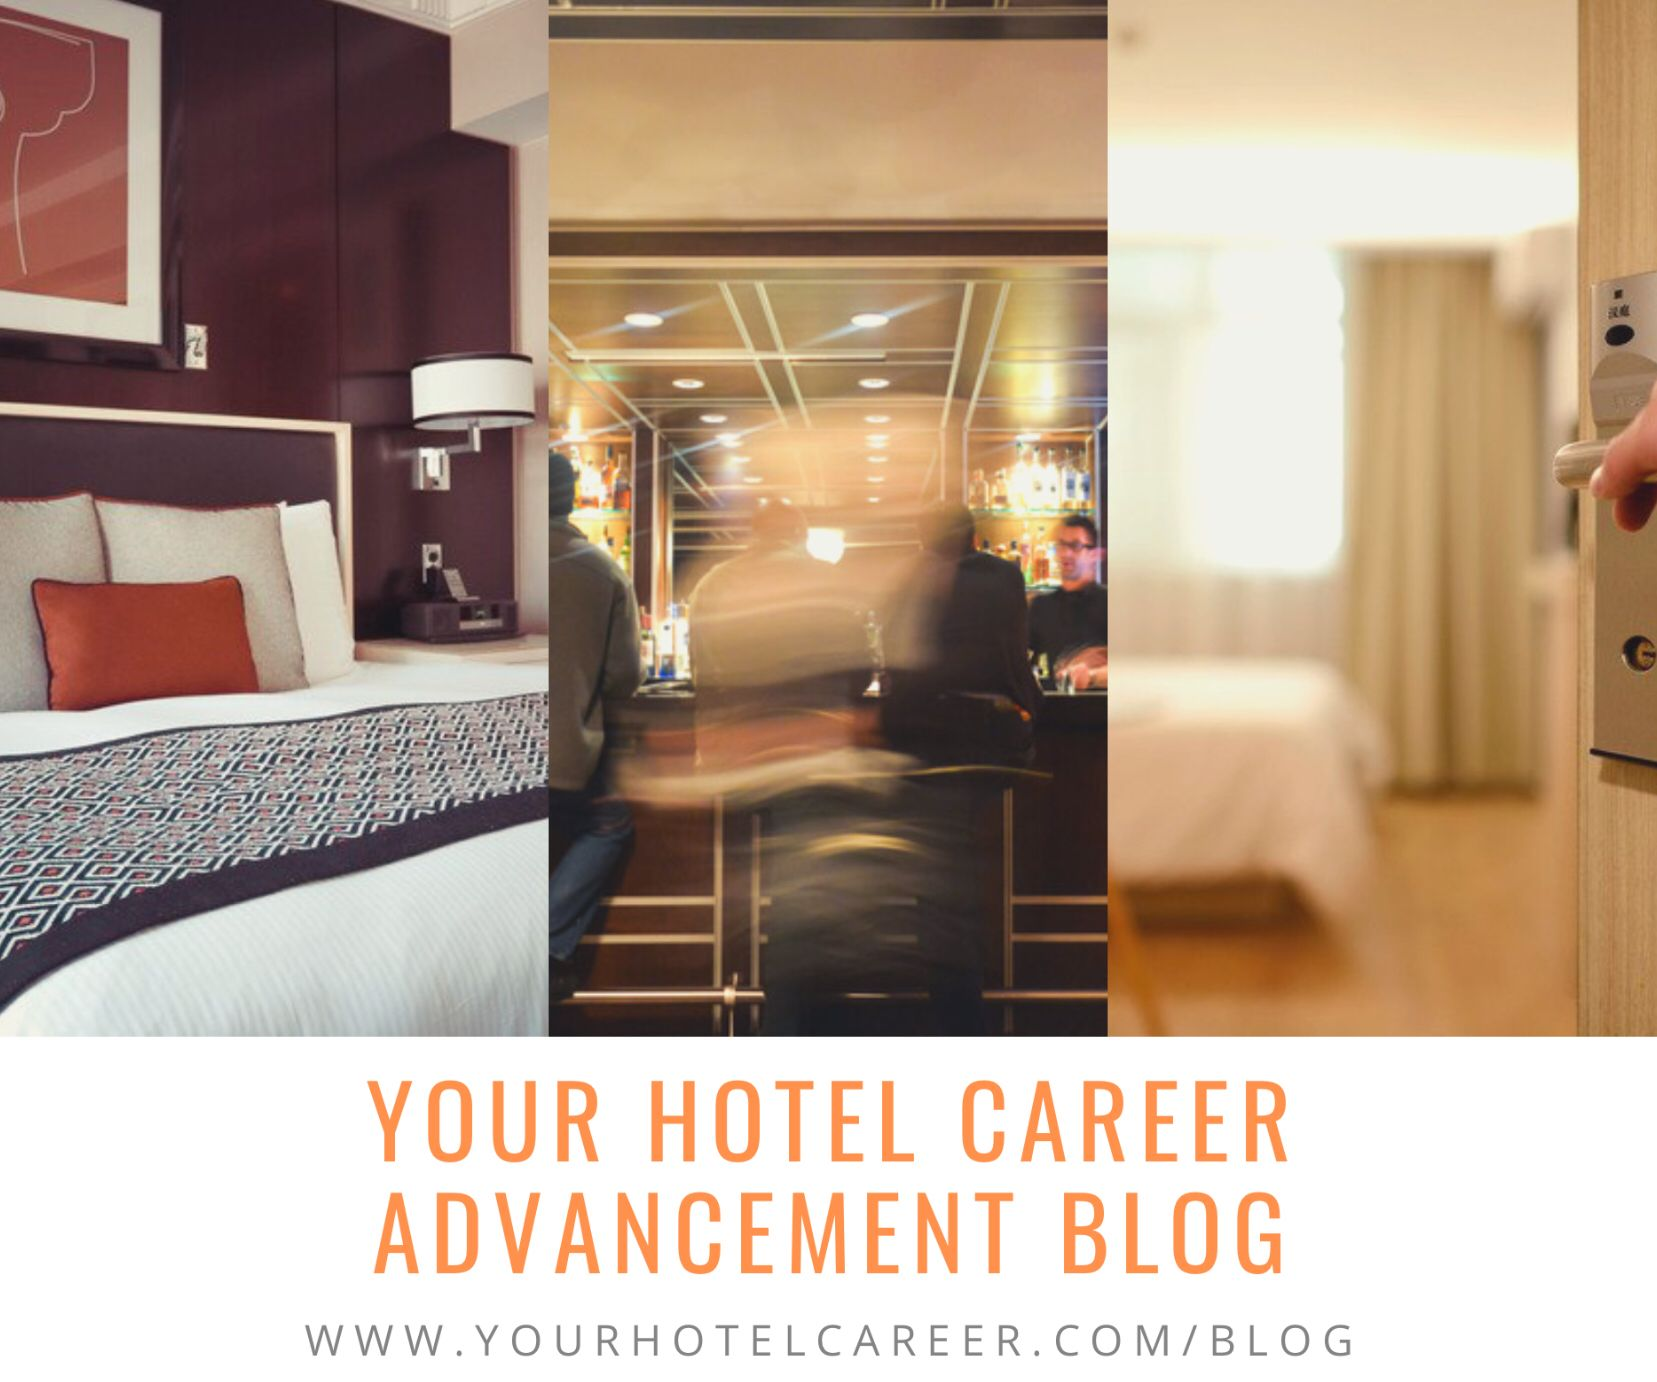 Your Hotel Career Advancement Blog I Am Dedicated To Help Improve